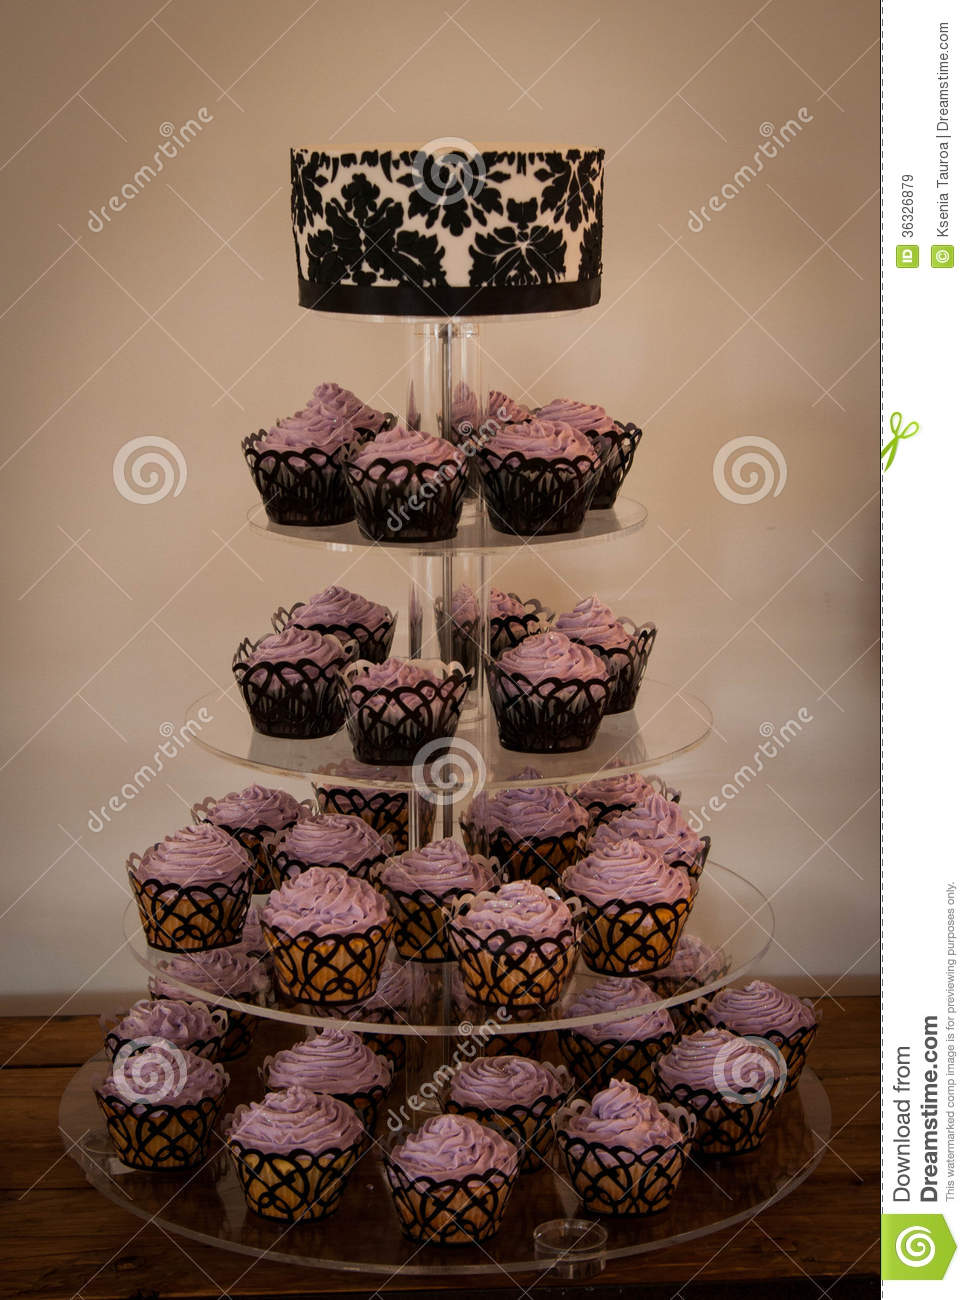 wedding cake royalty free stock images - image: 36326879